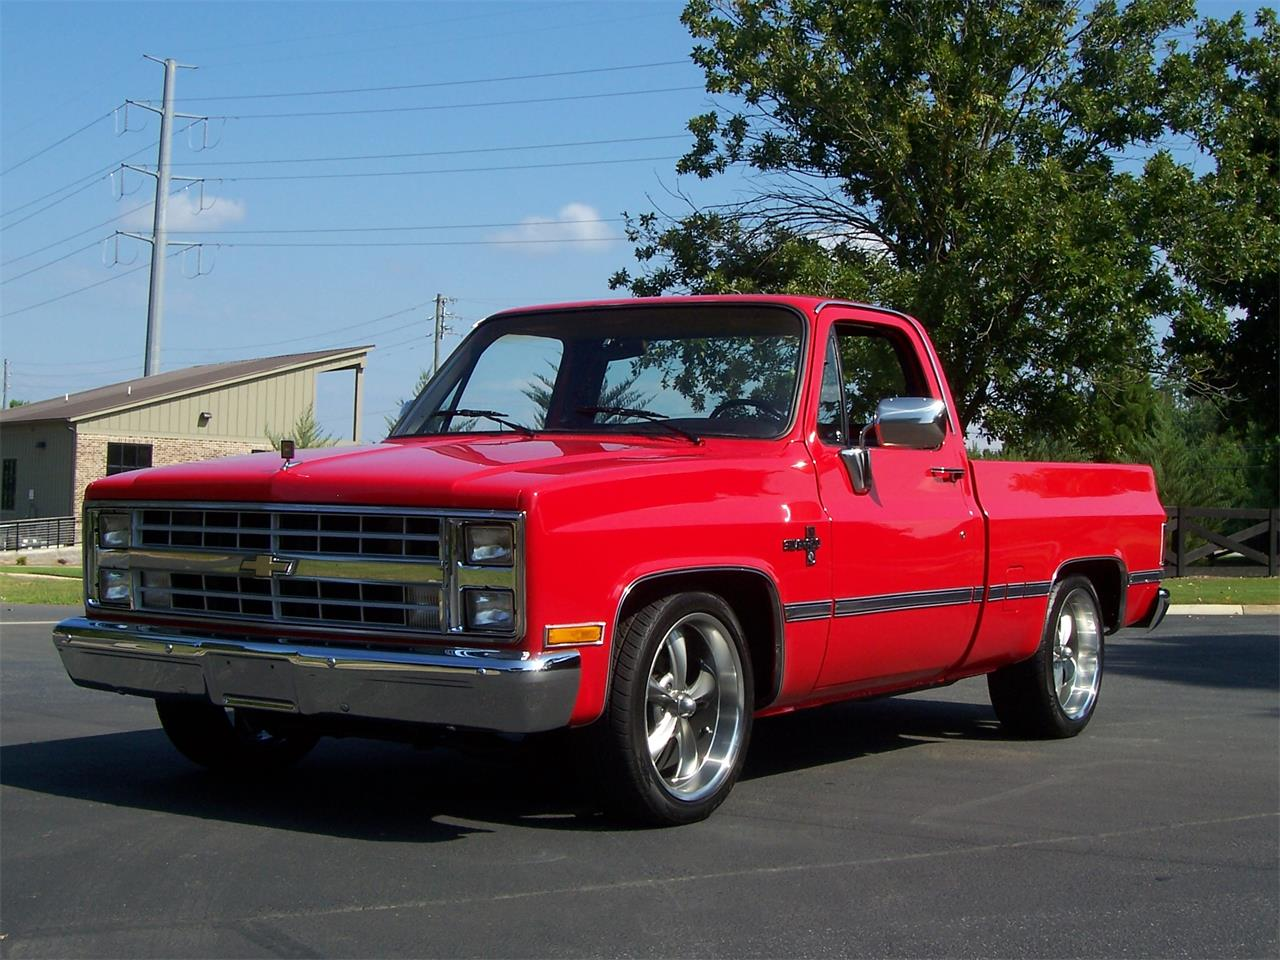 1985 Chevrolet C/K 10 for sale in Alpharetta, GA – photo 3